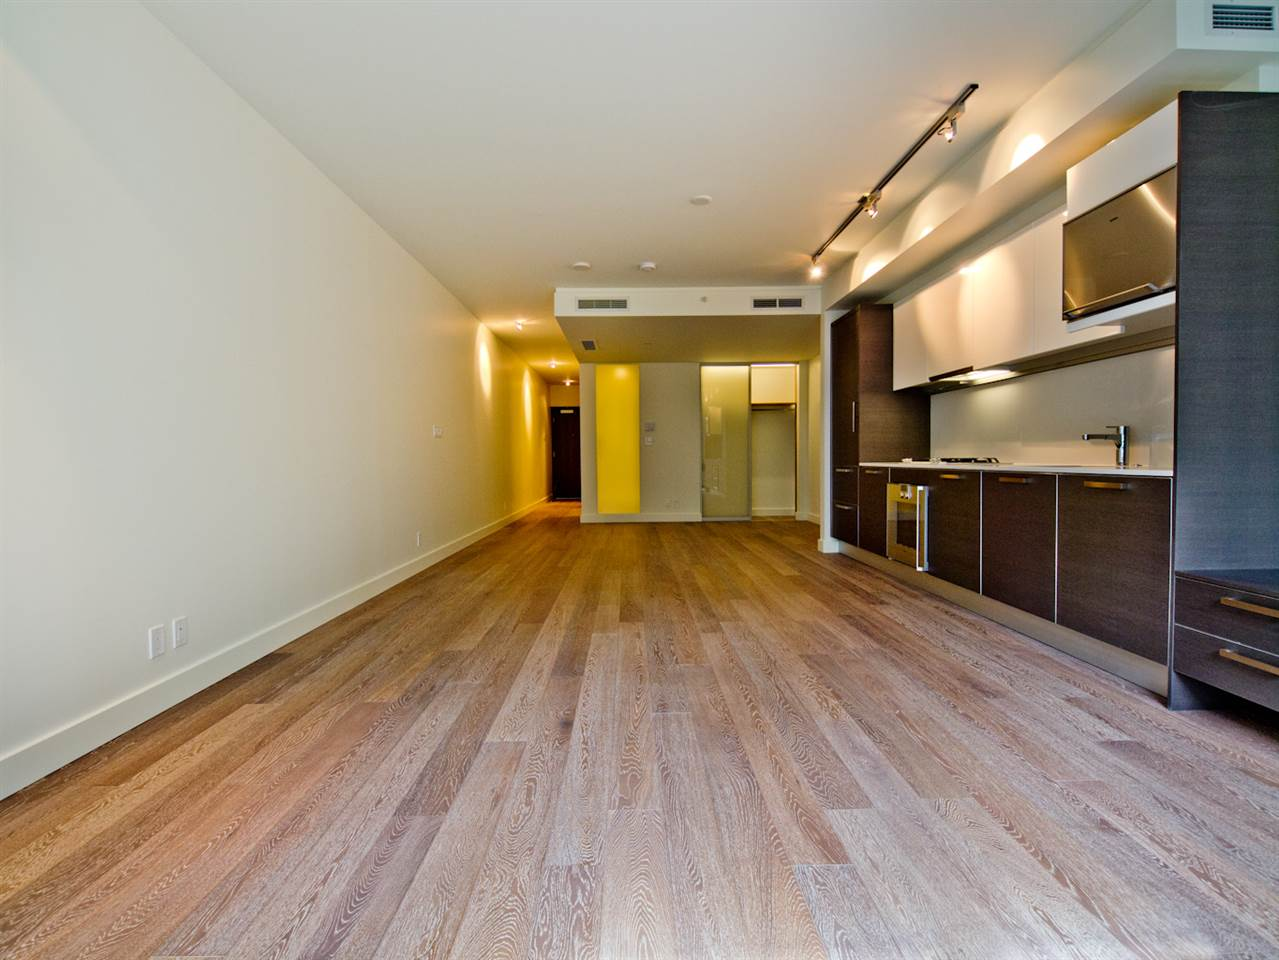 Main Photo: 301 1477 W PENDER STREET in Vancouver: Coal Harbour Condo for sale (Vancouver West)  : MLS® # R2038691